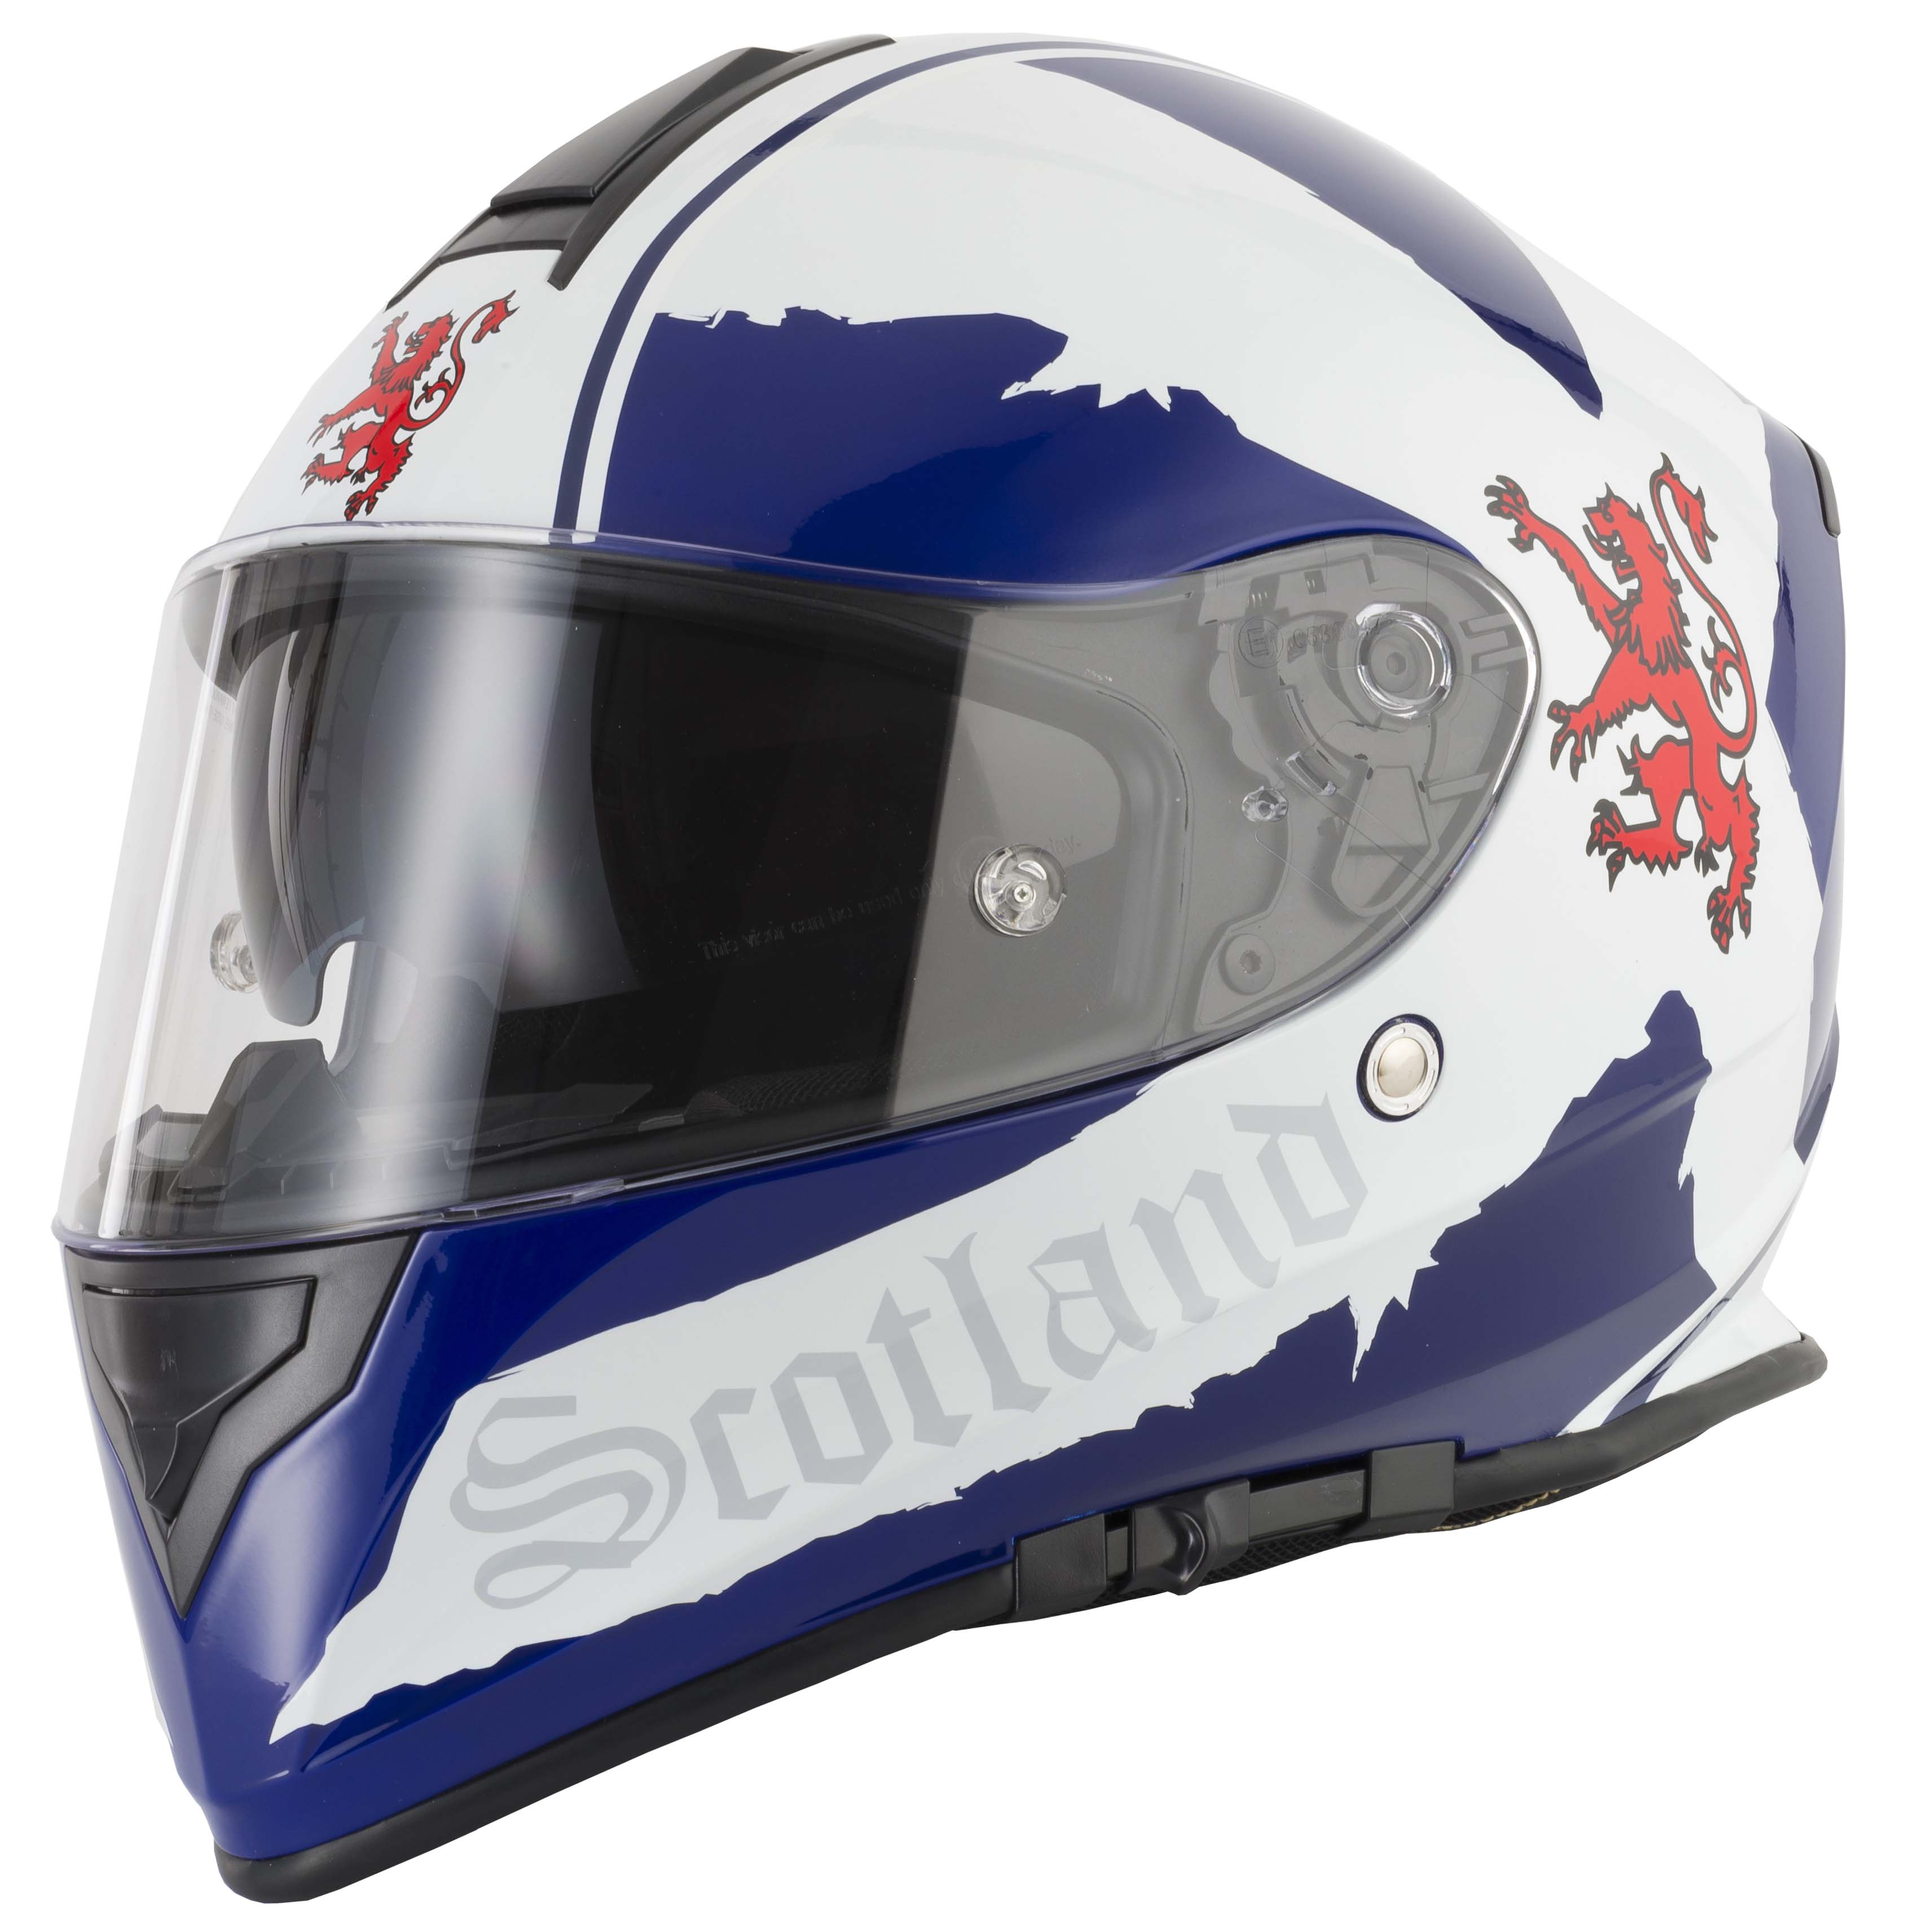 VCAN V127 BRITAIN HOLLOW SCOTLAND GREEN BLUE RED MOTORCYCLE FULL FACE HELMET Auto Parts & Accessories